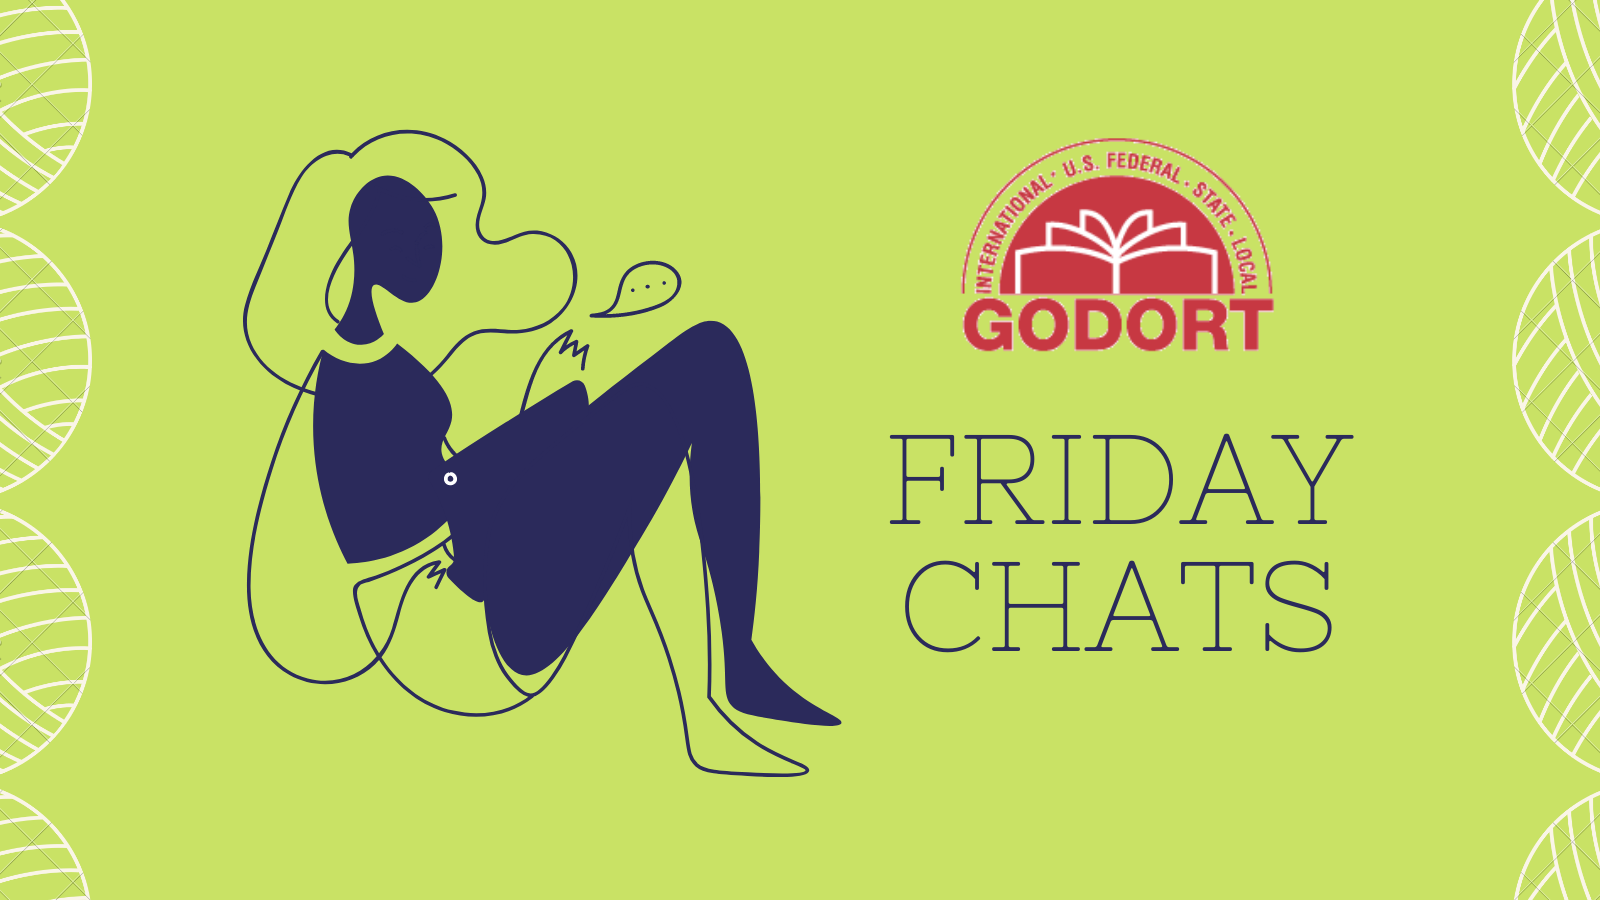 Friday Chats with GODORT! Join Us!